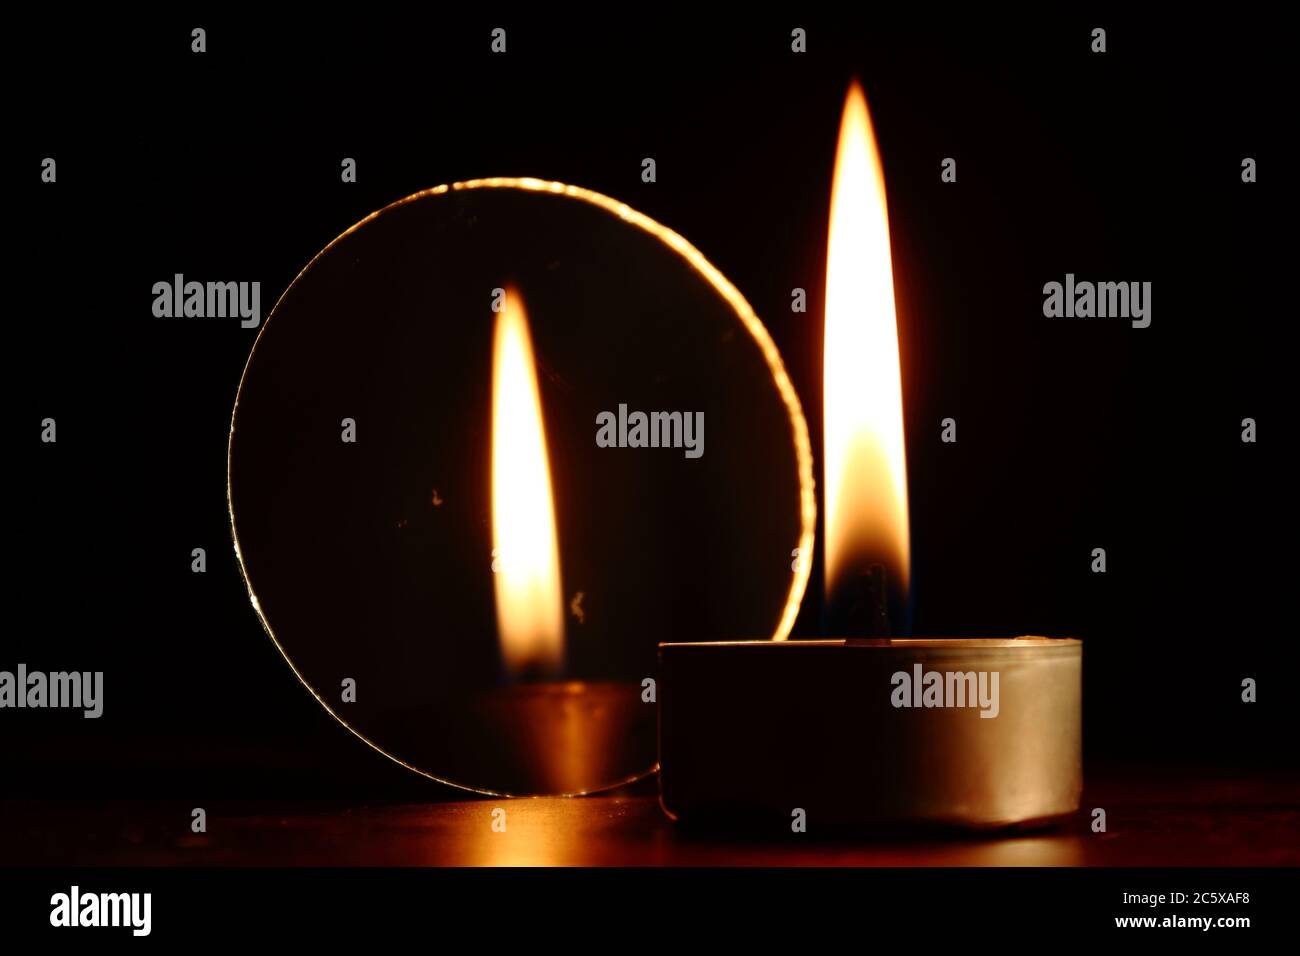 burning candle next to a mirror showing its reflection, dark background Stock Photo